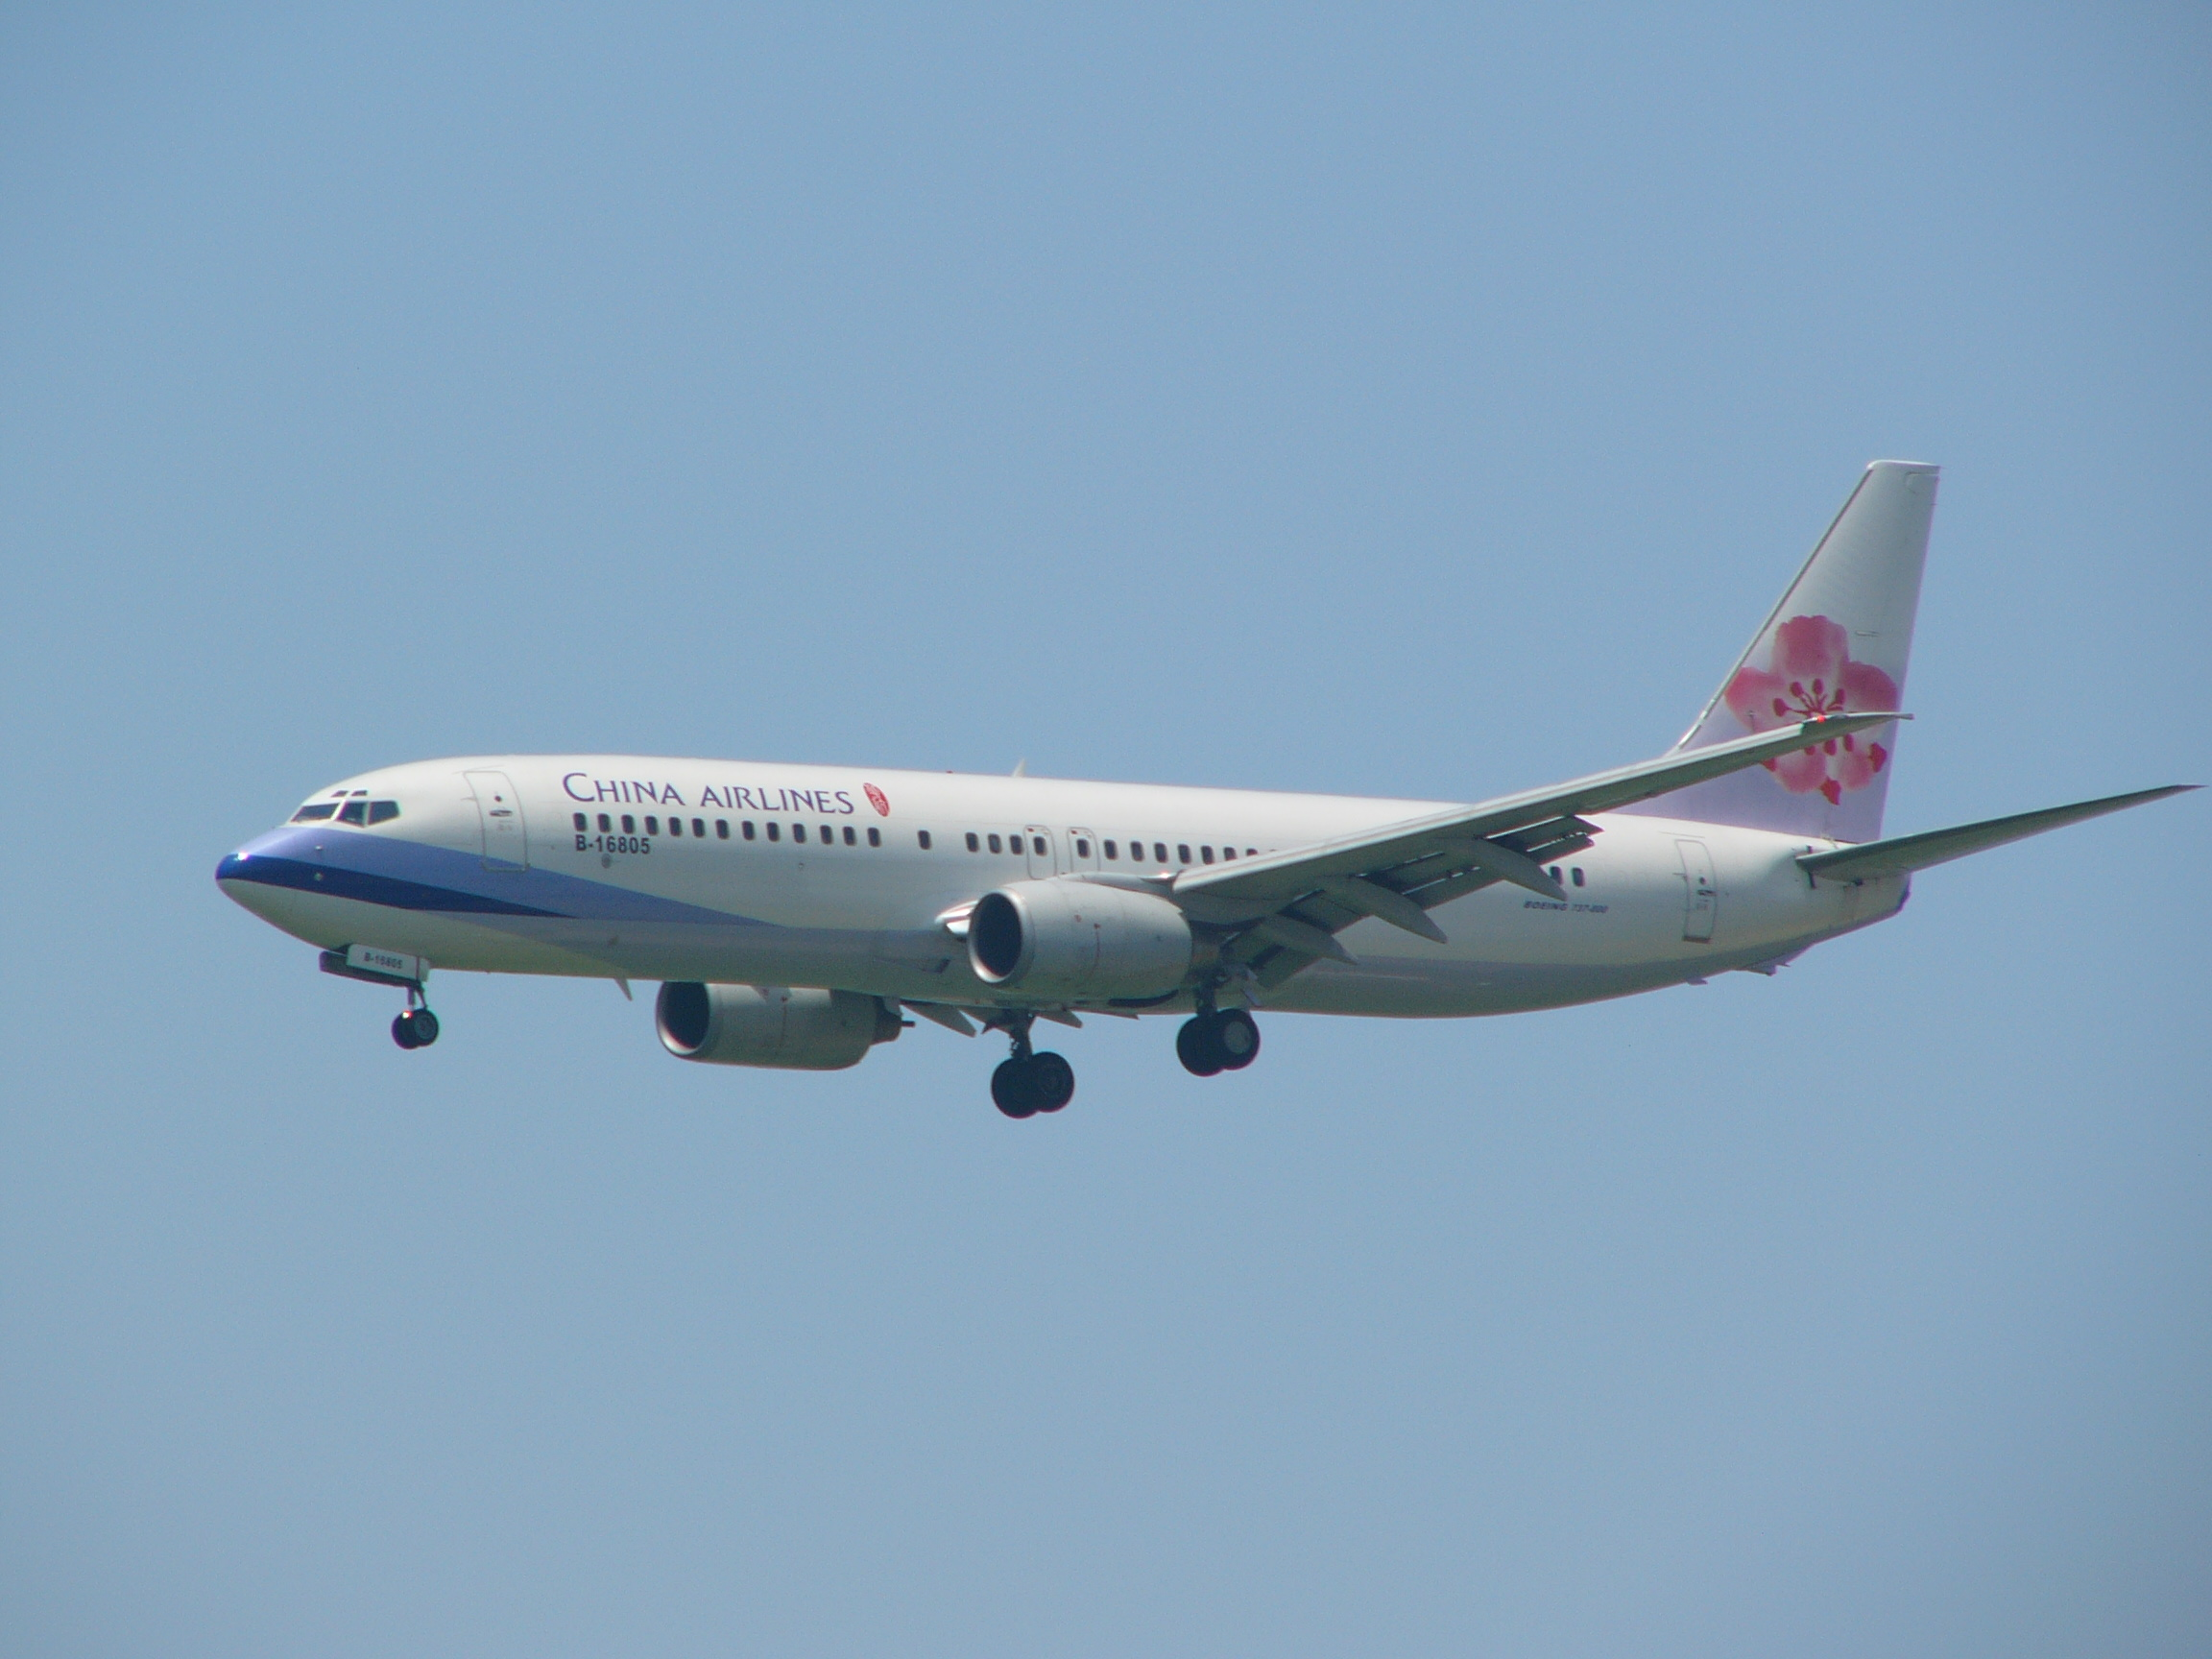 All World Visits: China Airlines